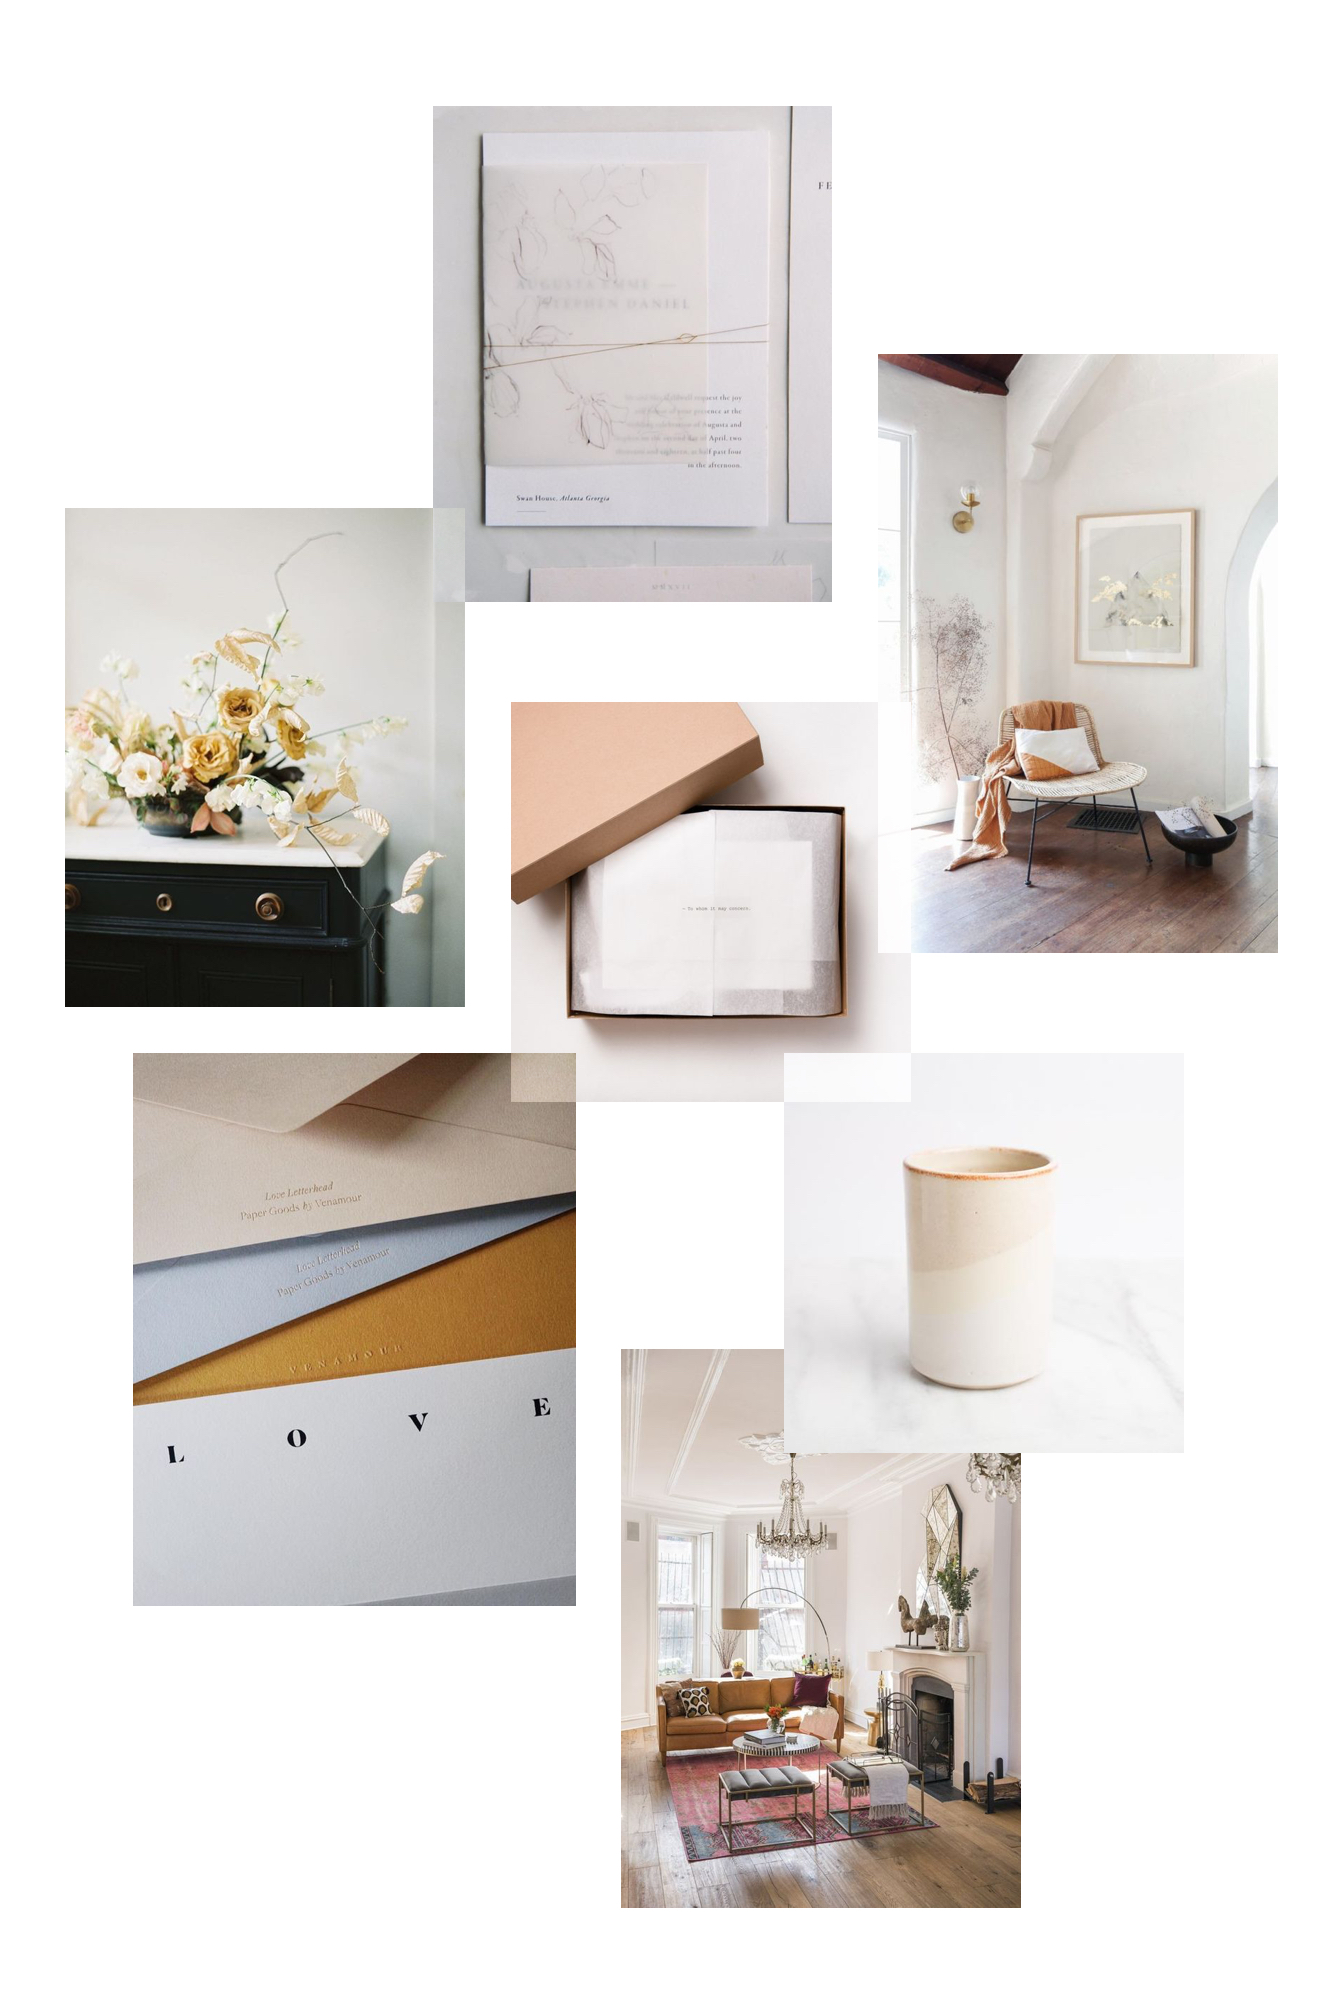 Images via:  Idyll Paper  /  Kelly Lenard  /  Noissue  /  SF Girl by Bay  /  Venamour  /  Belove  /  West Elm